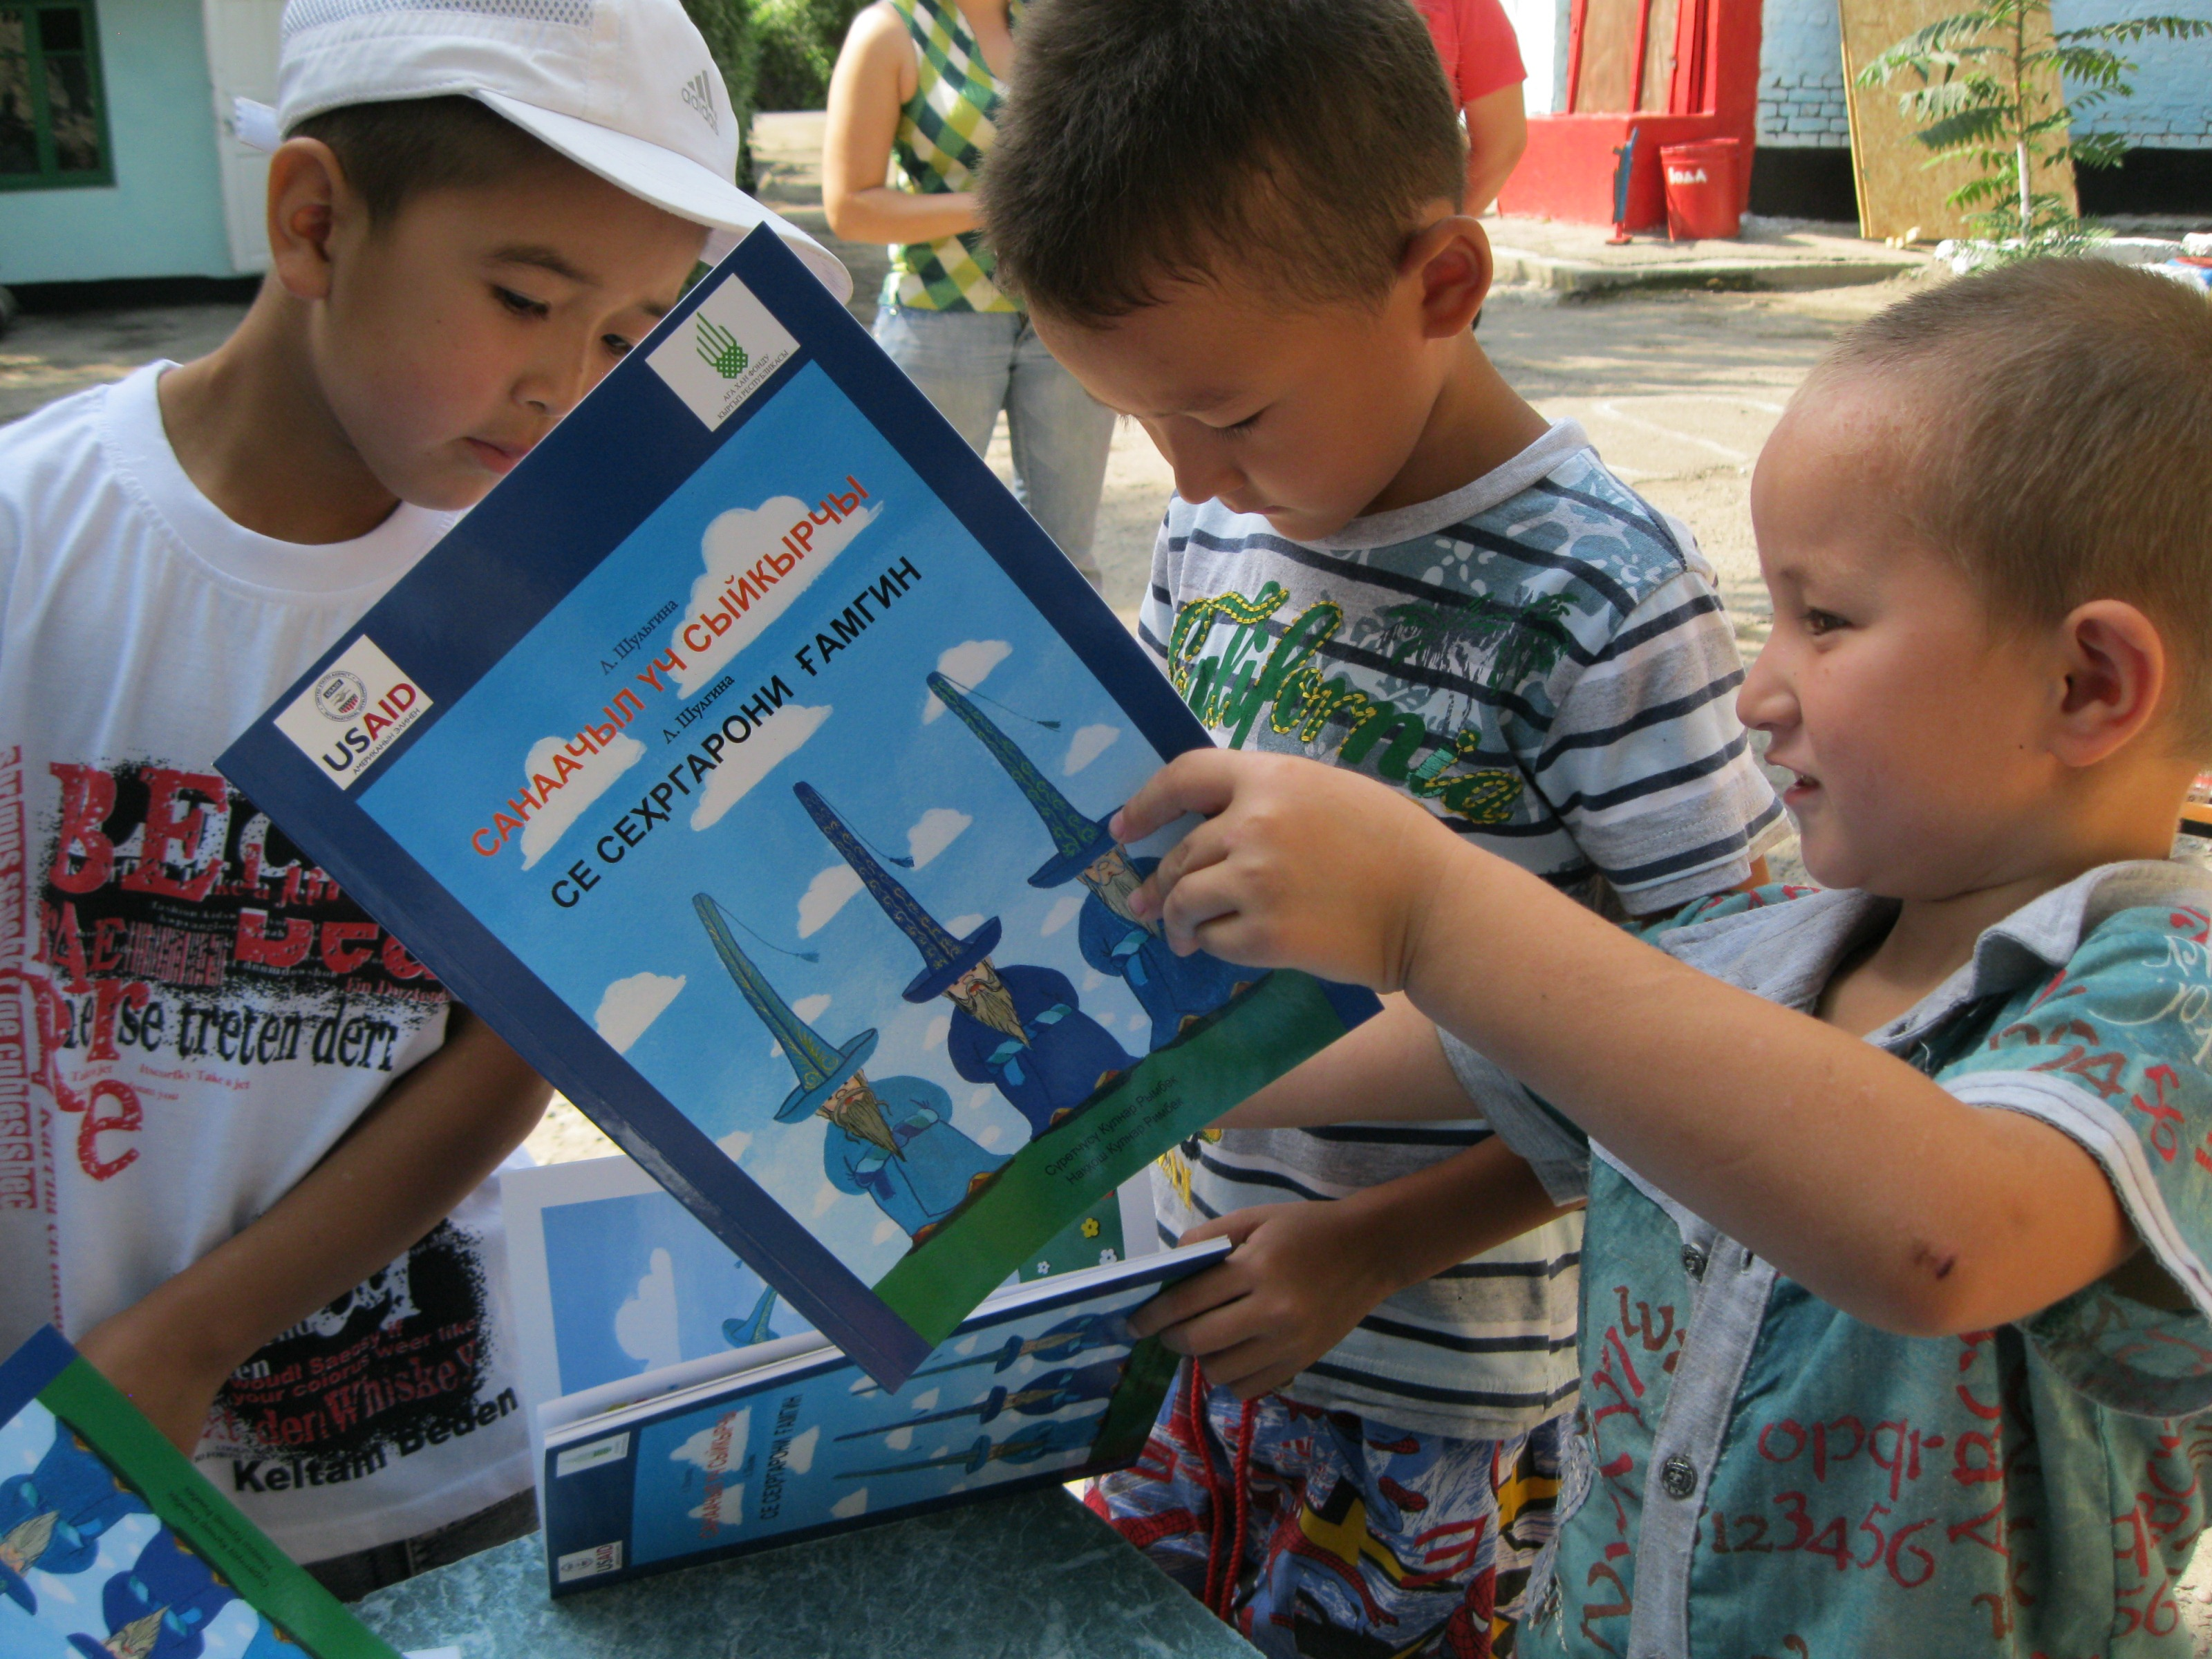 In 2011, USAID supported the publication of a new series of multi-language children's books.